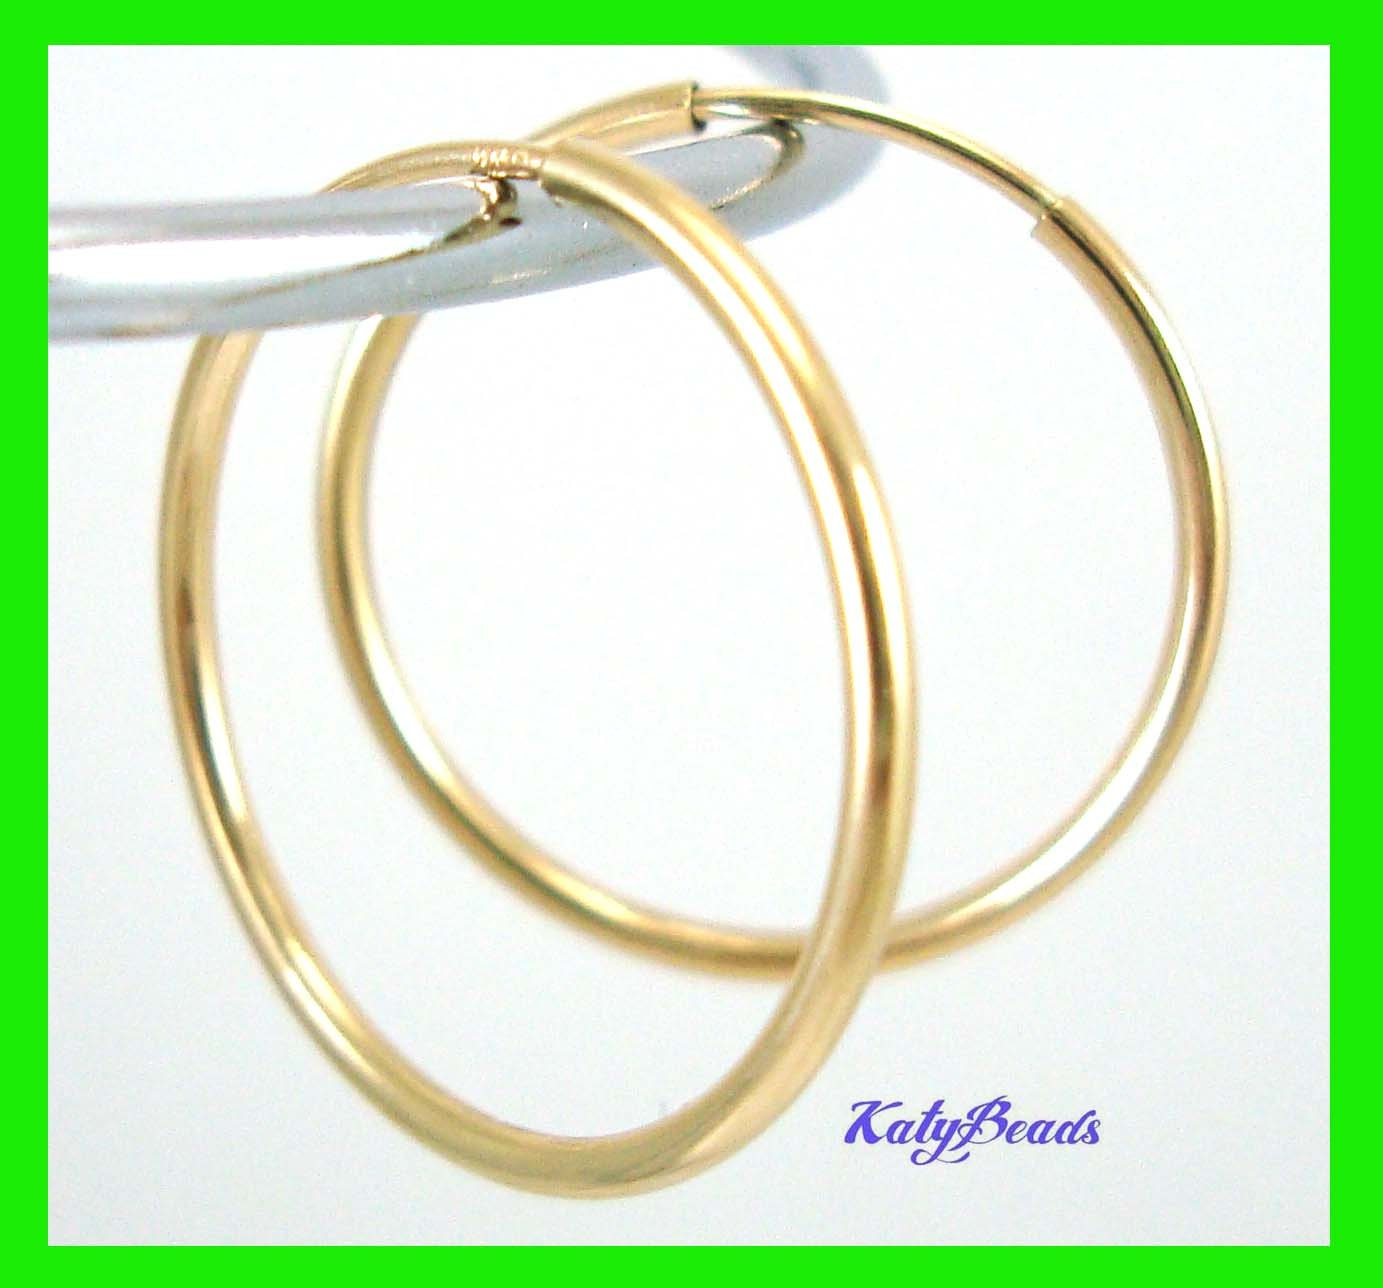 14k Gold Filled Endless hoop Earring 21mm Round Circle Ear Wire ...